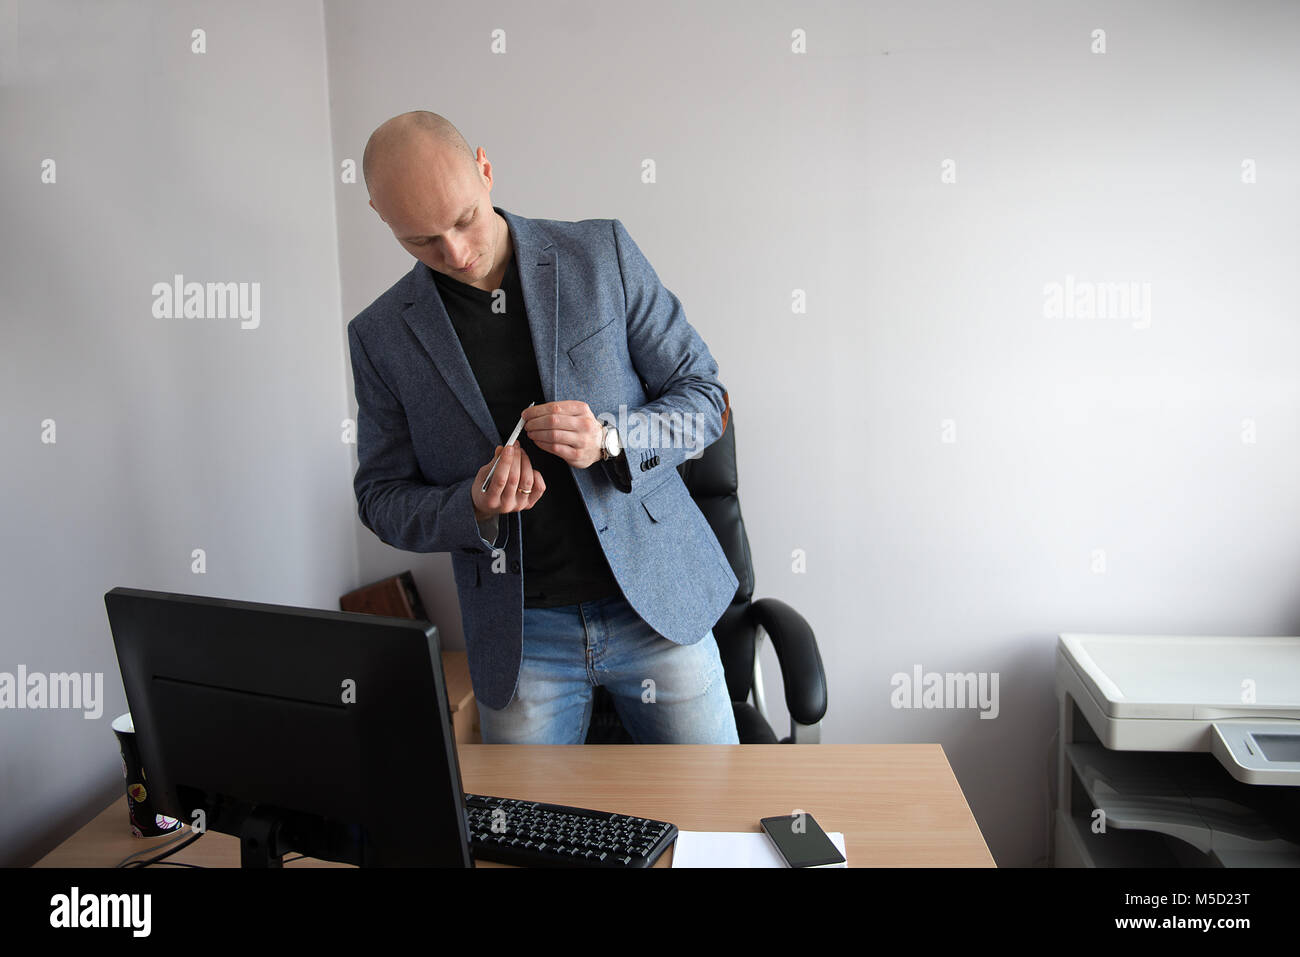 A young businessman working in a clean office with a computer and a cell phone, a portrait taken in the natural - Stock Image